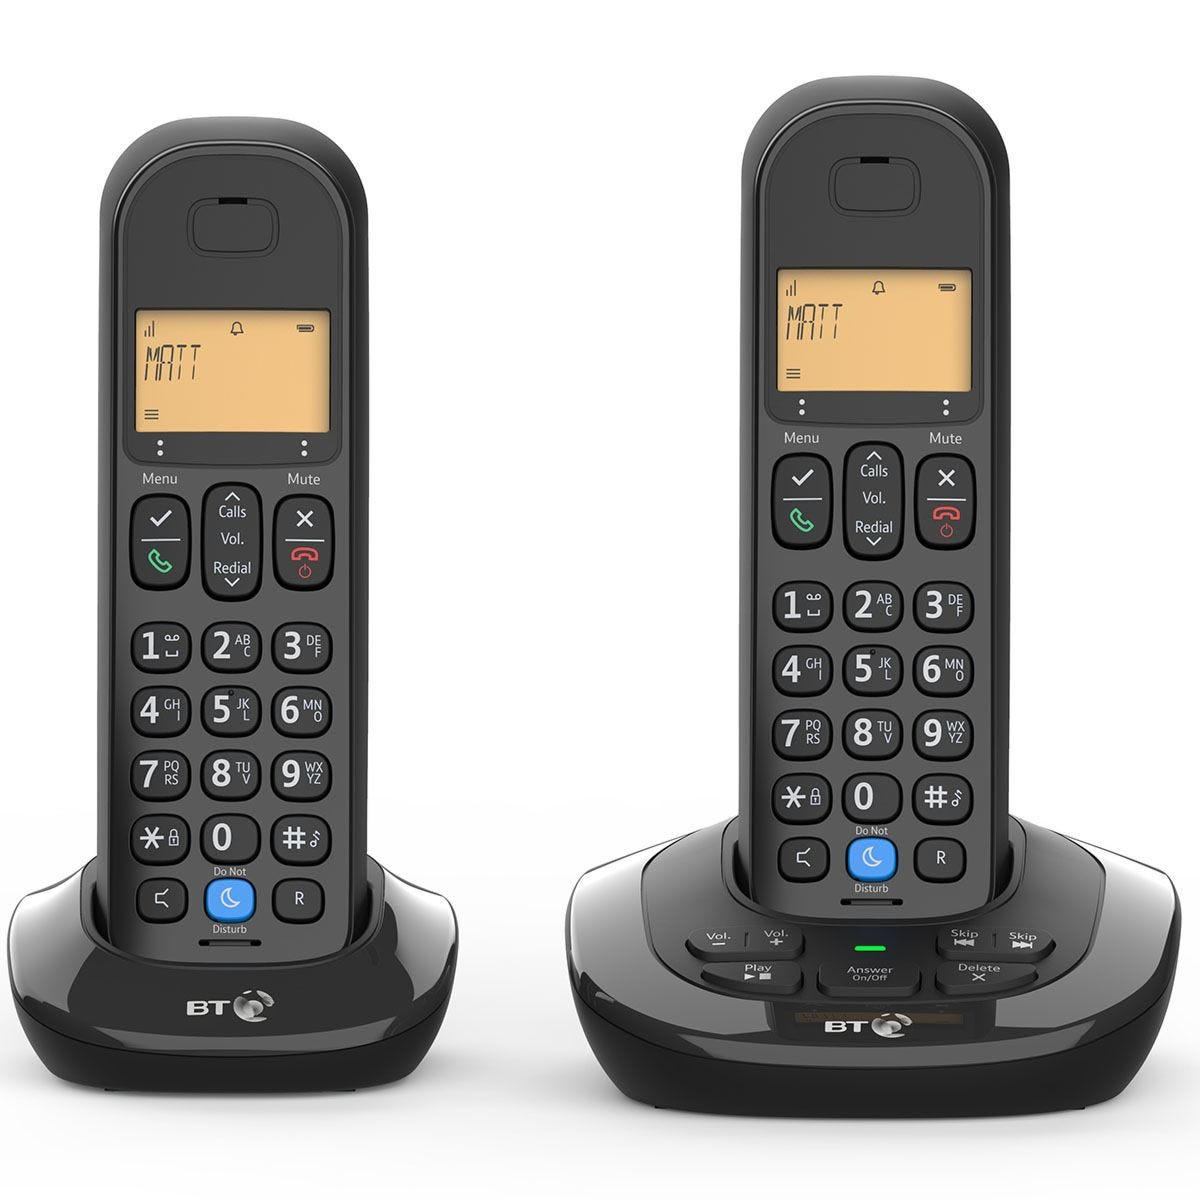 BT 3880 Cordless Home Phone with Nuisance Call Blocking and Answering Machine - Twin